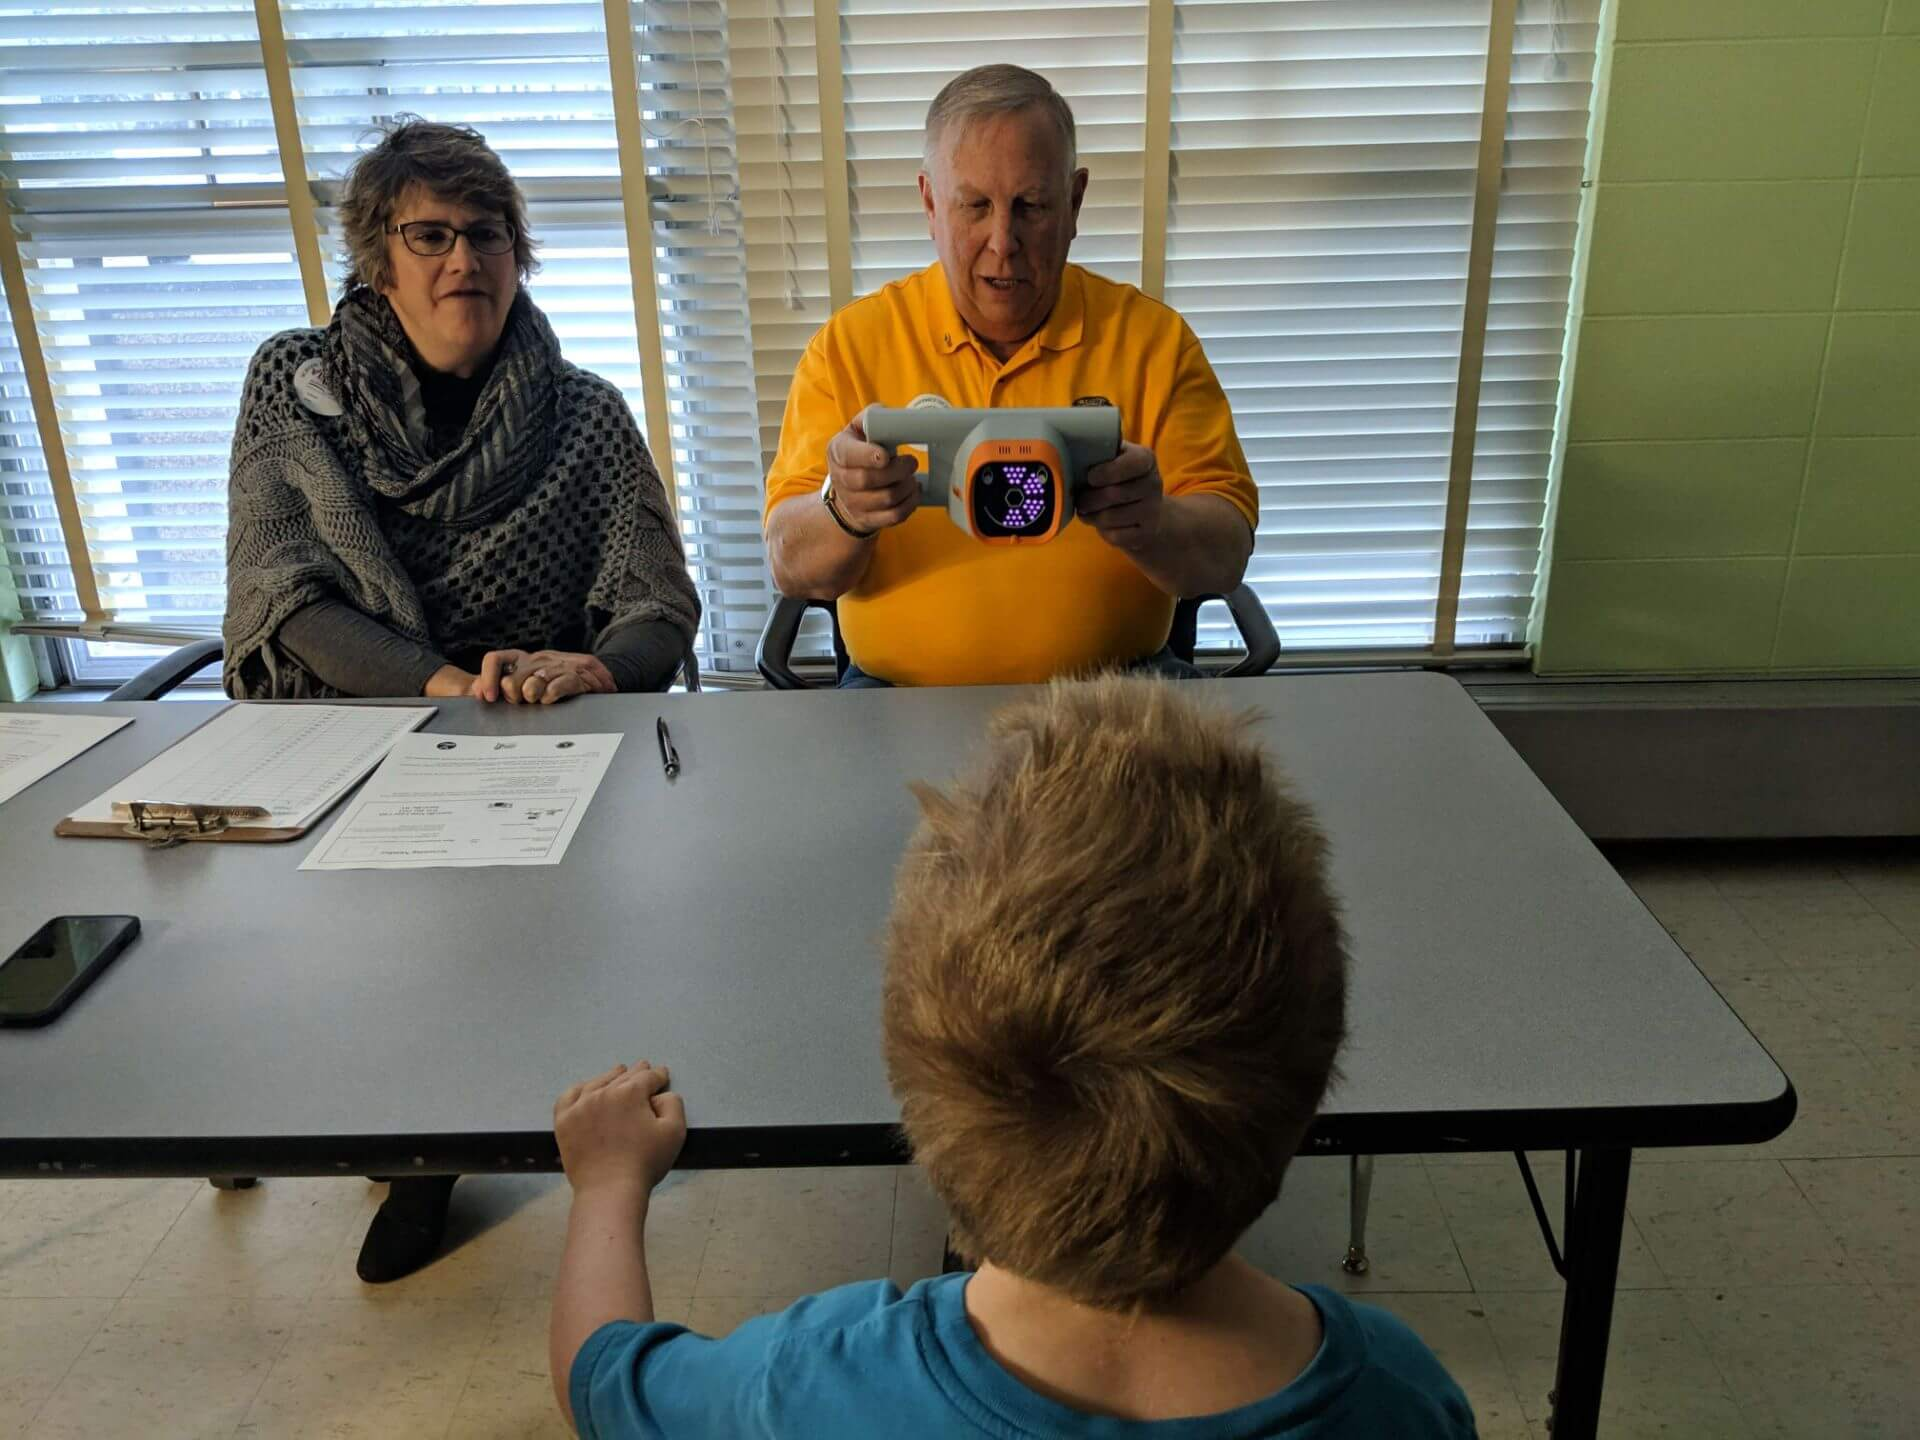 Lions conduct vision screening test on a kindergartener